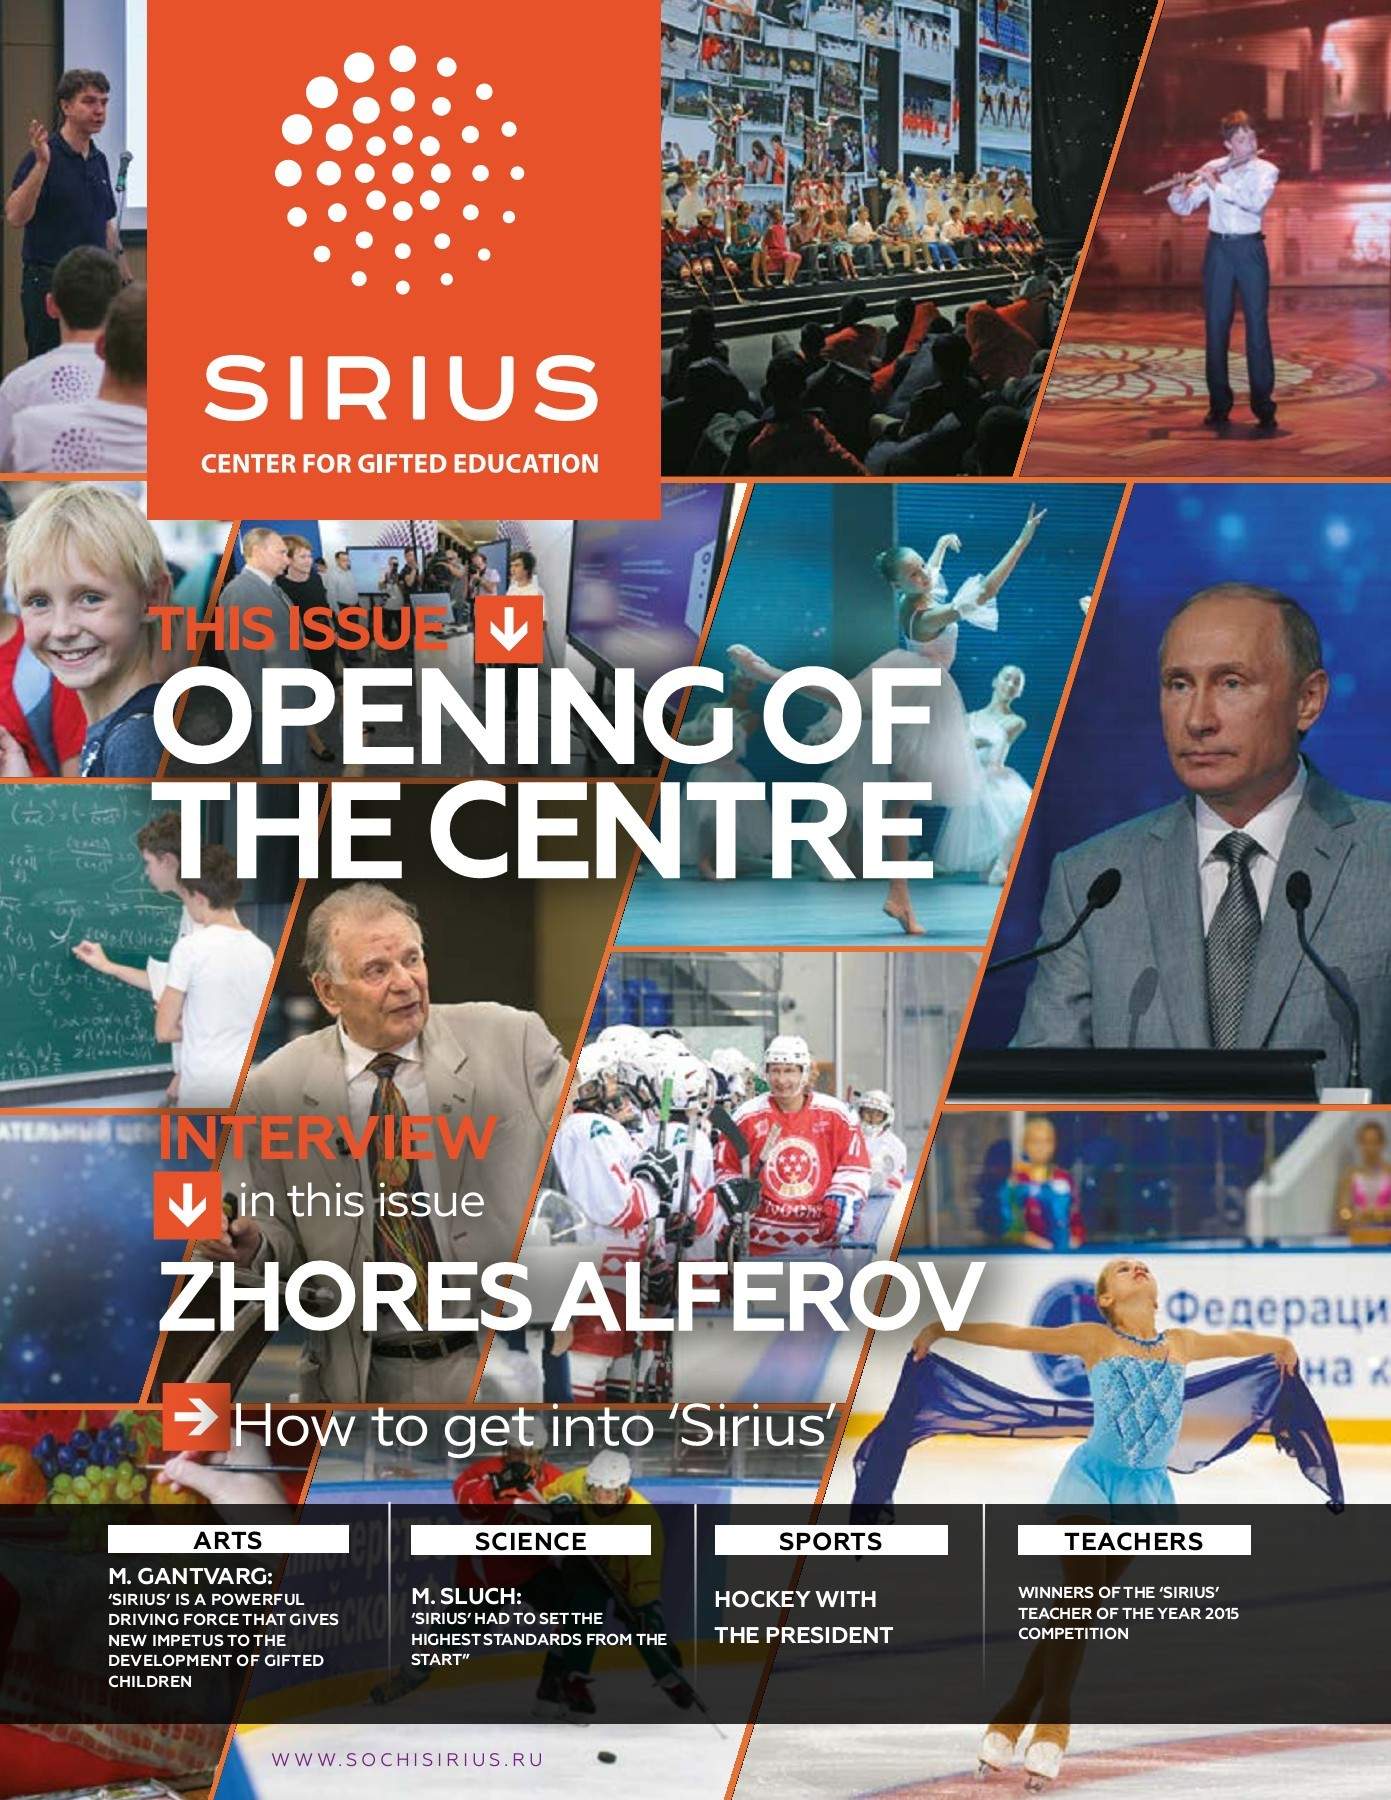 Educational center Sirius (Sochi) for gifted children. How to get Reviews 92